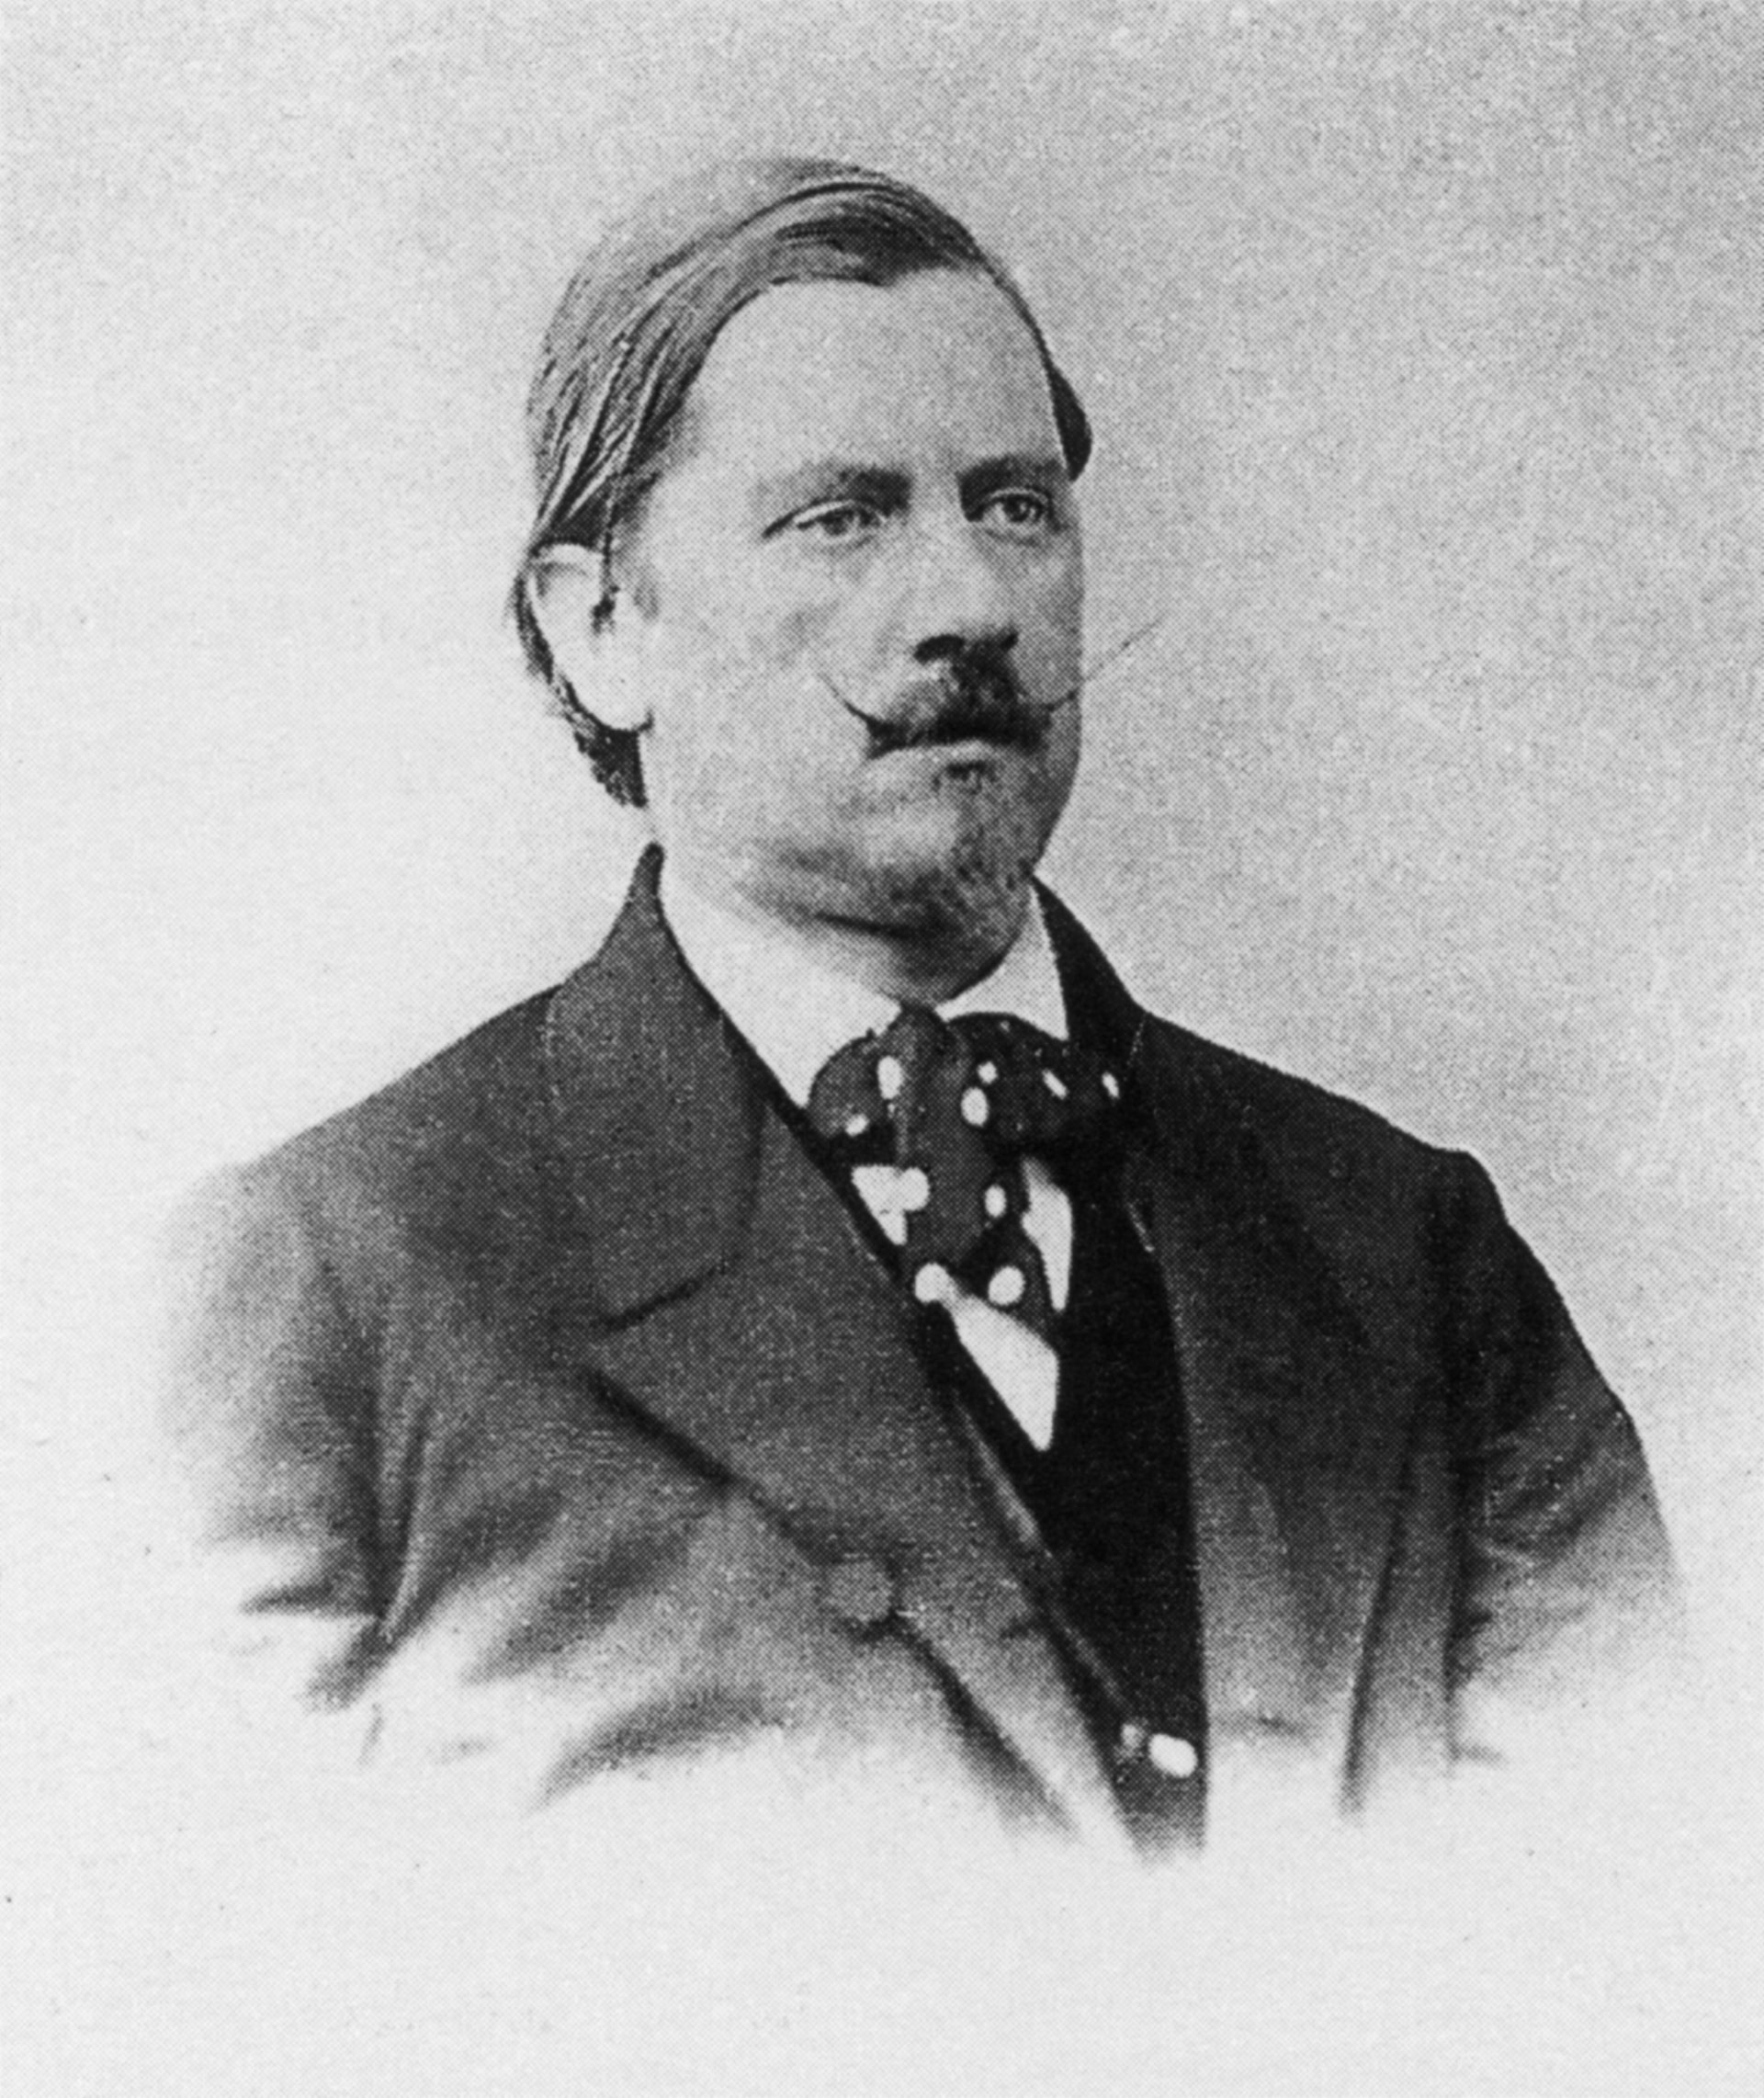 Karl-Maria Kertbeny, ca. 1865. He is best known for coining the words heterosexual and homosexual.